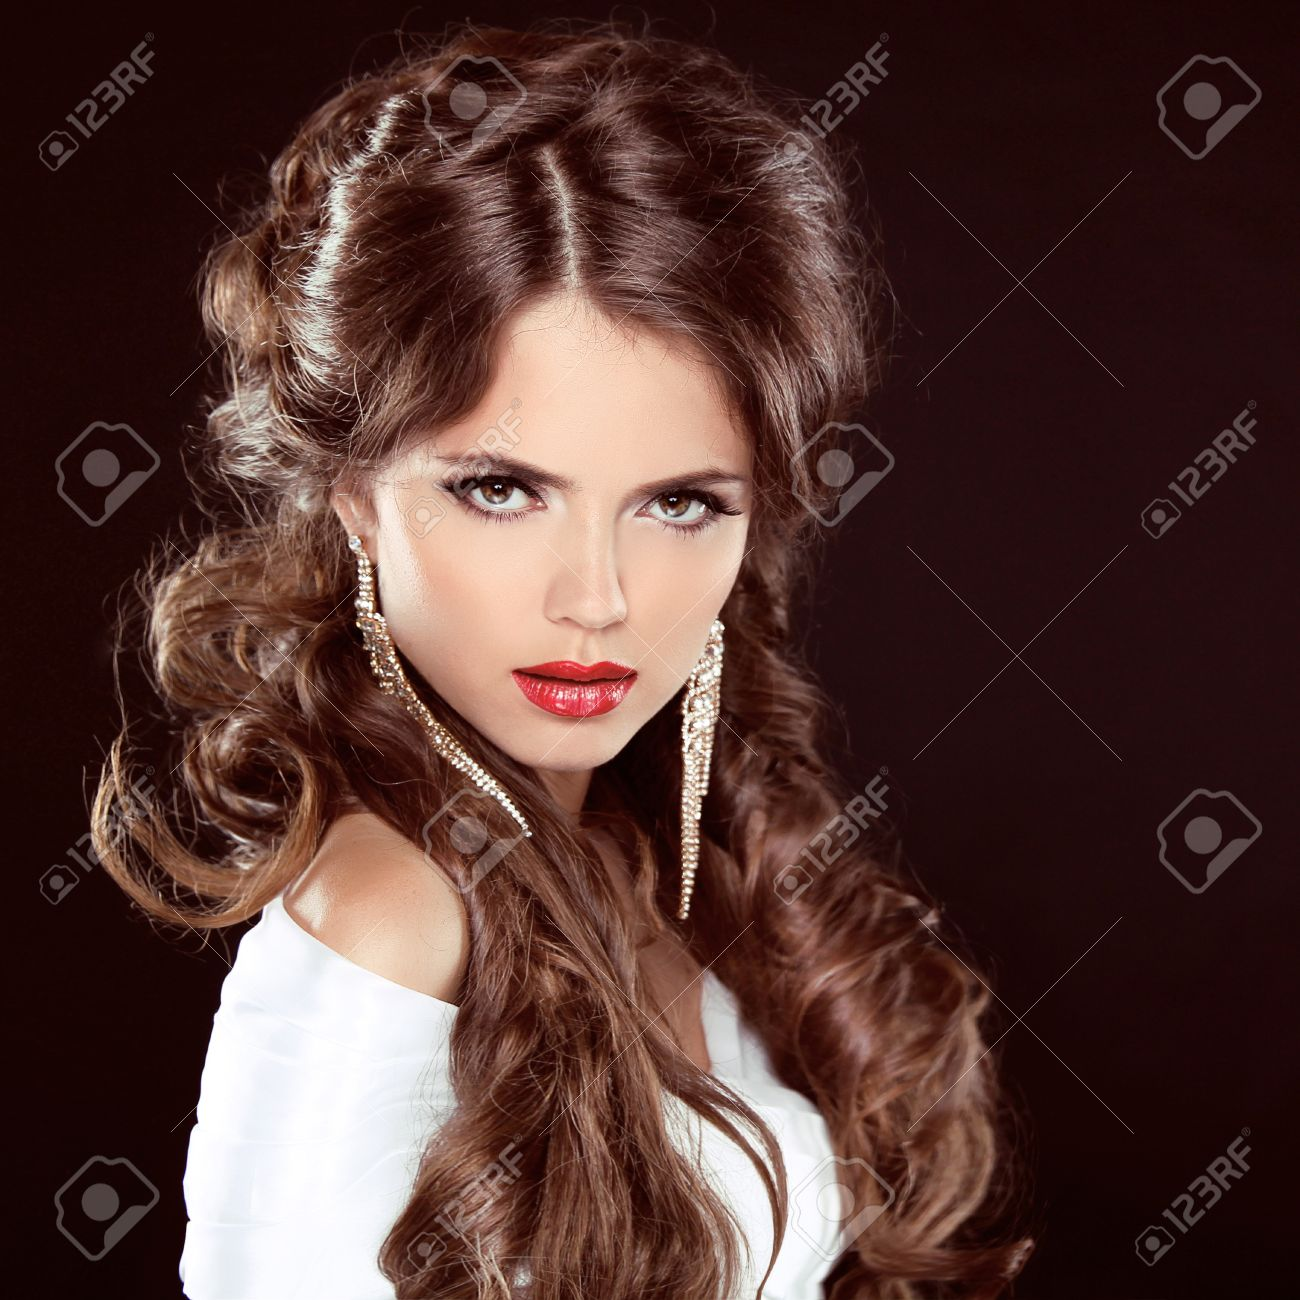 Strange Hairstyle Beautiful Girl Portrait Beauty Woman With Brown Curly Short Hairstyles For Black Women Fulllsitofus